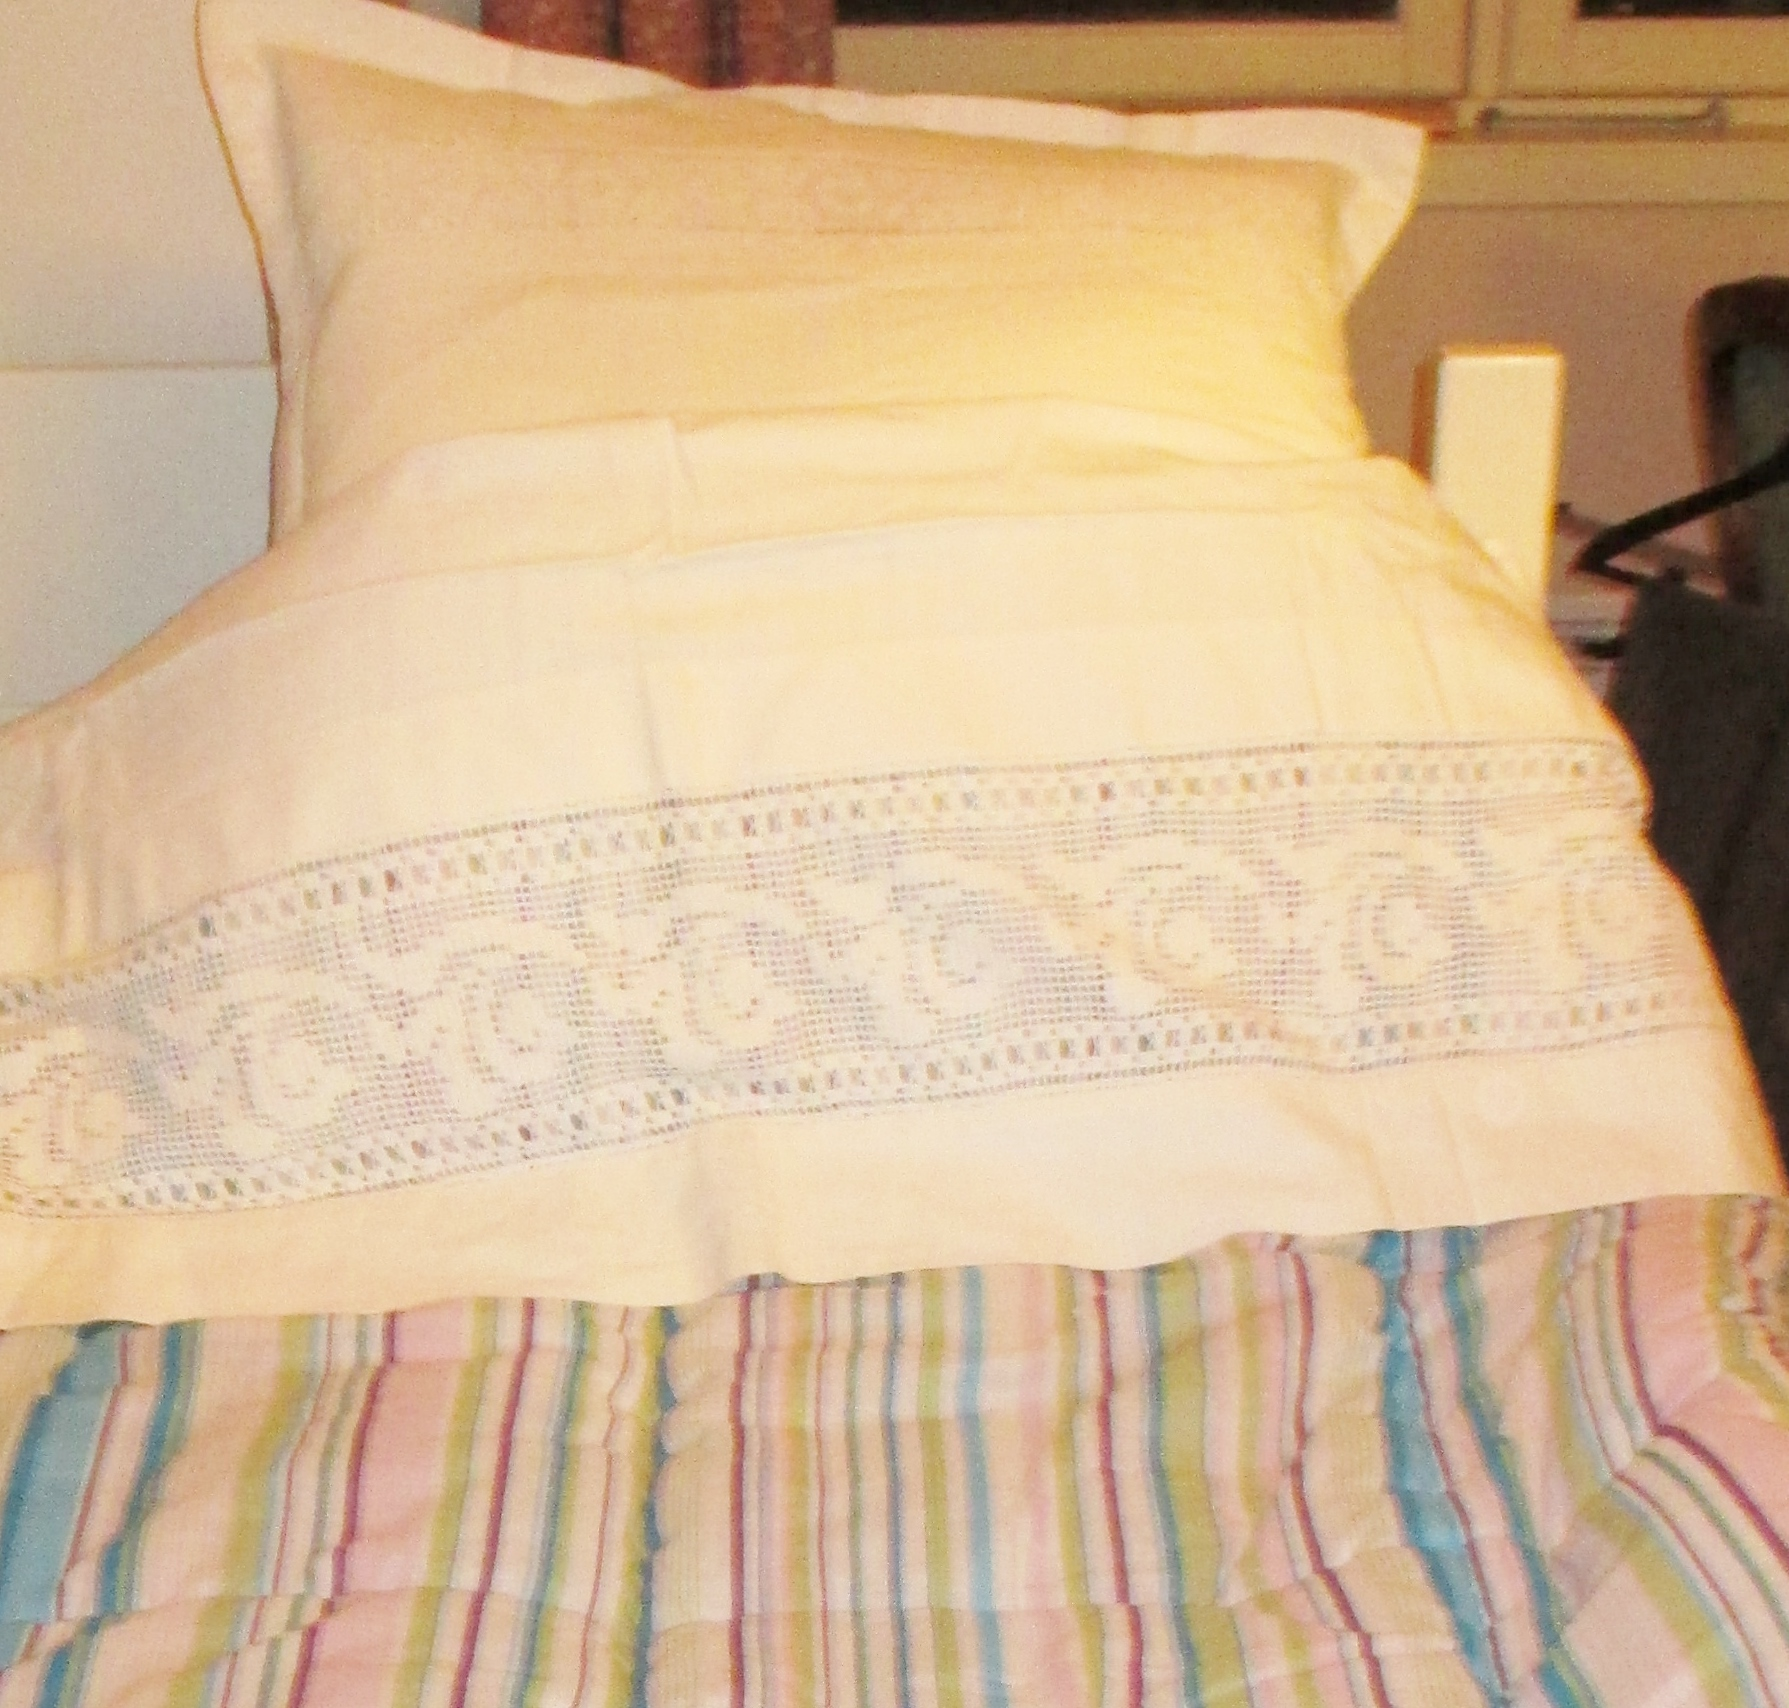 M932M Sheets and pillowcases with crocheted lace